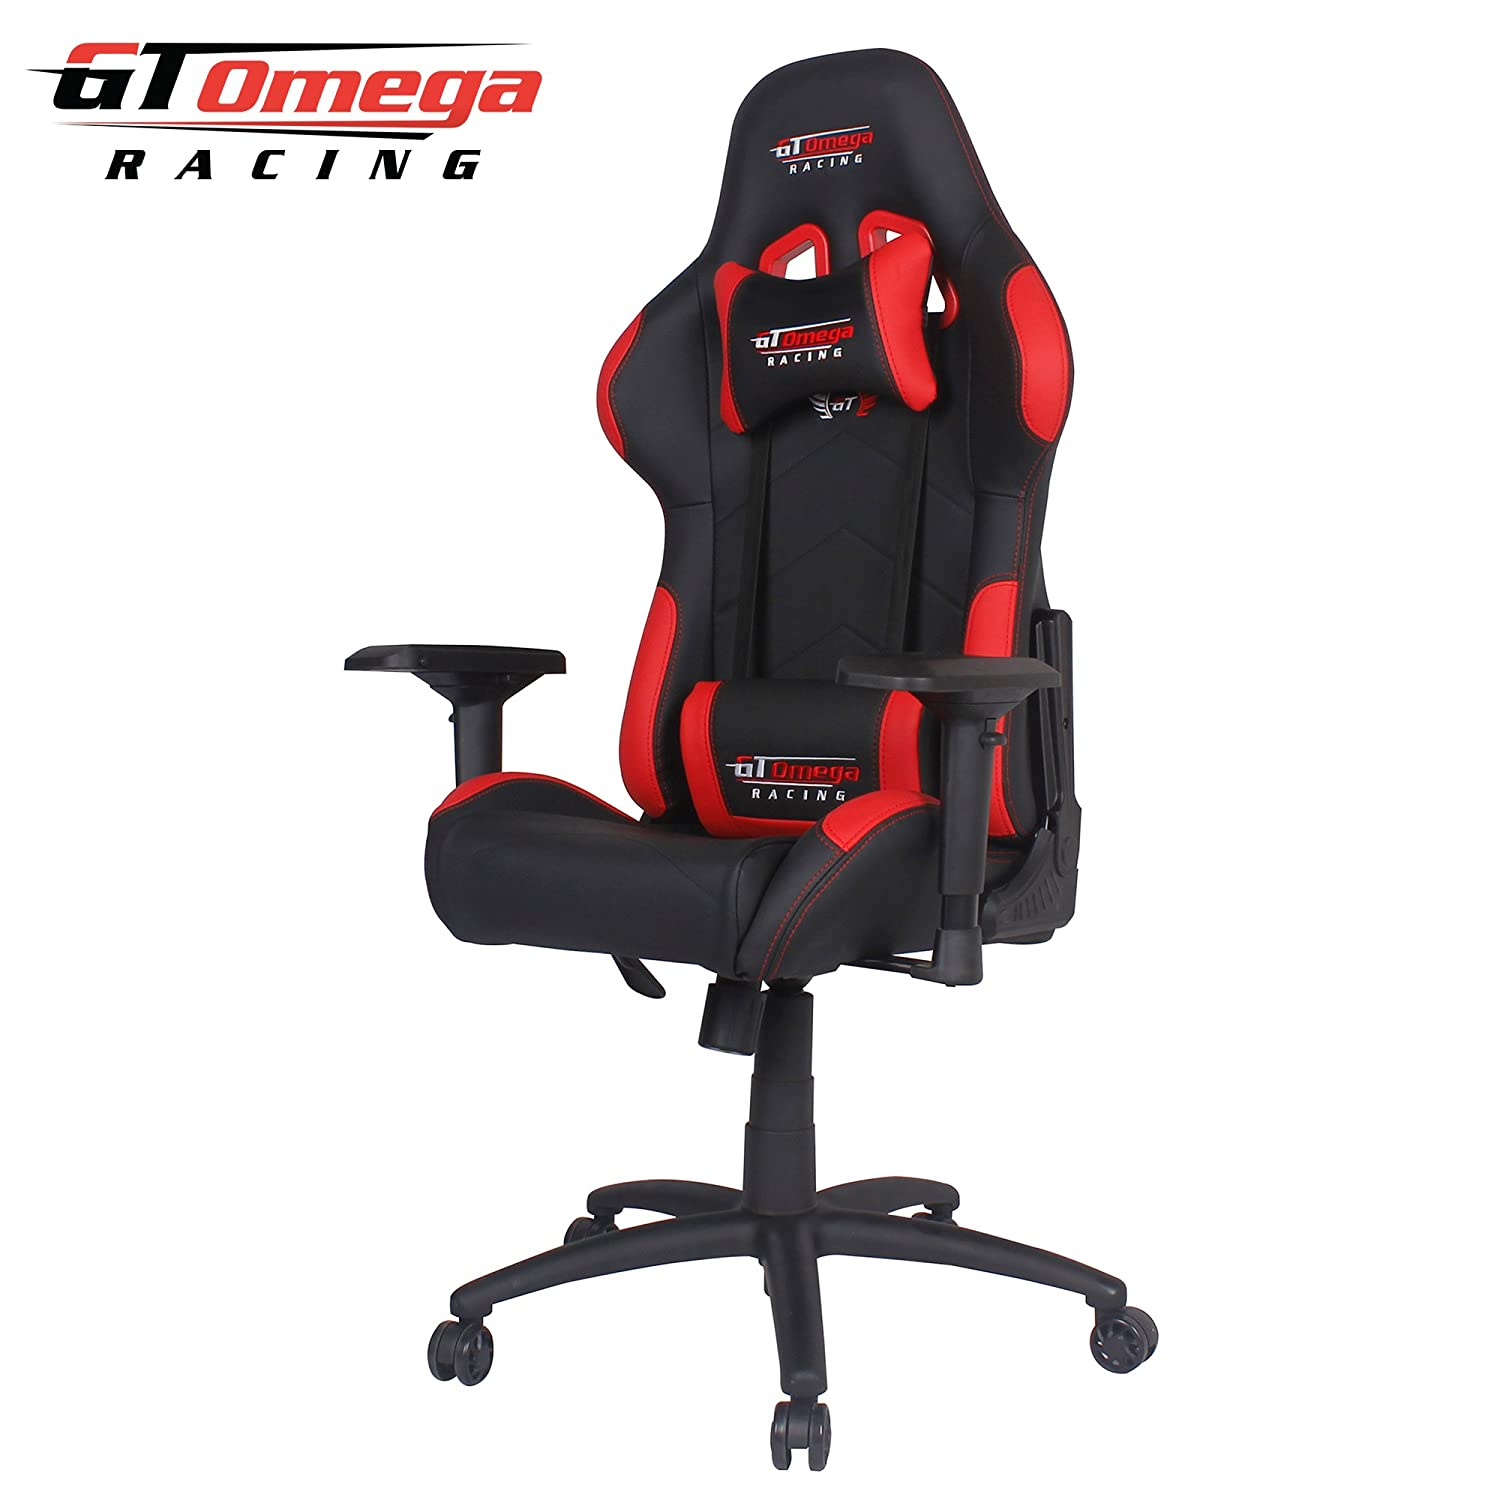 Amazon GT Omega PRO Racing fice Chair Black and Red Leather Kitchen & Dining